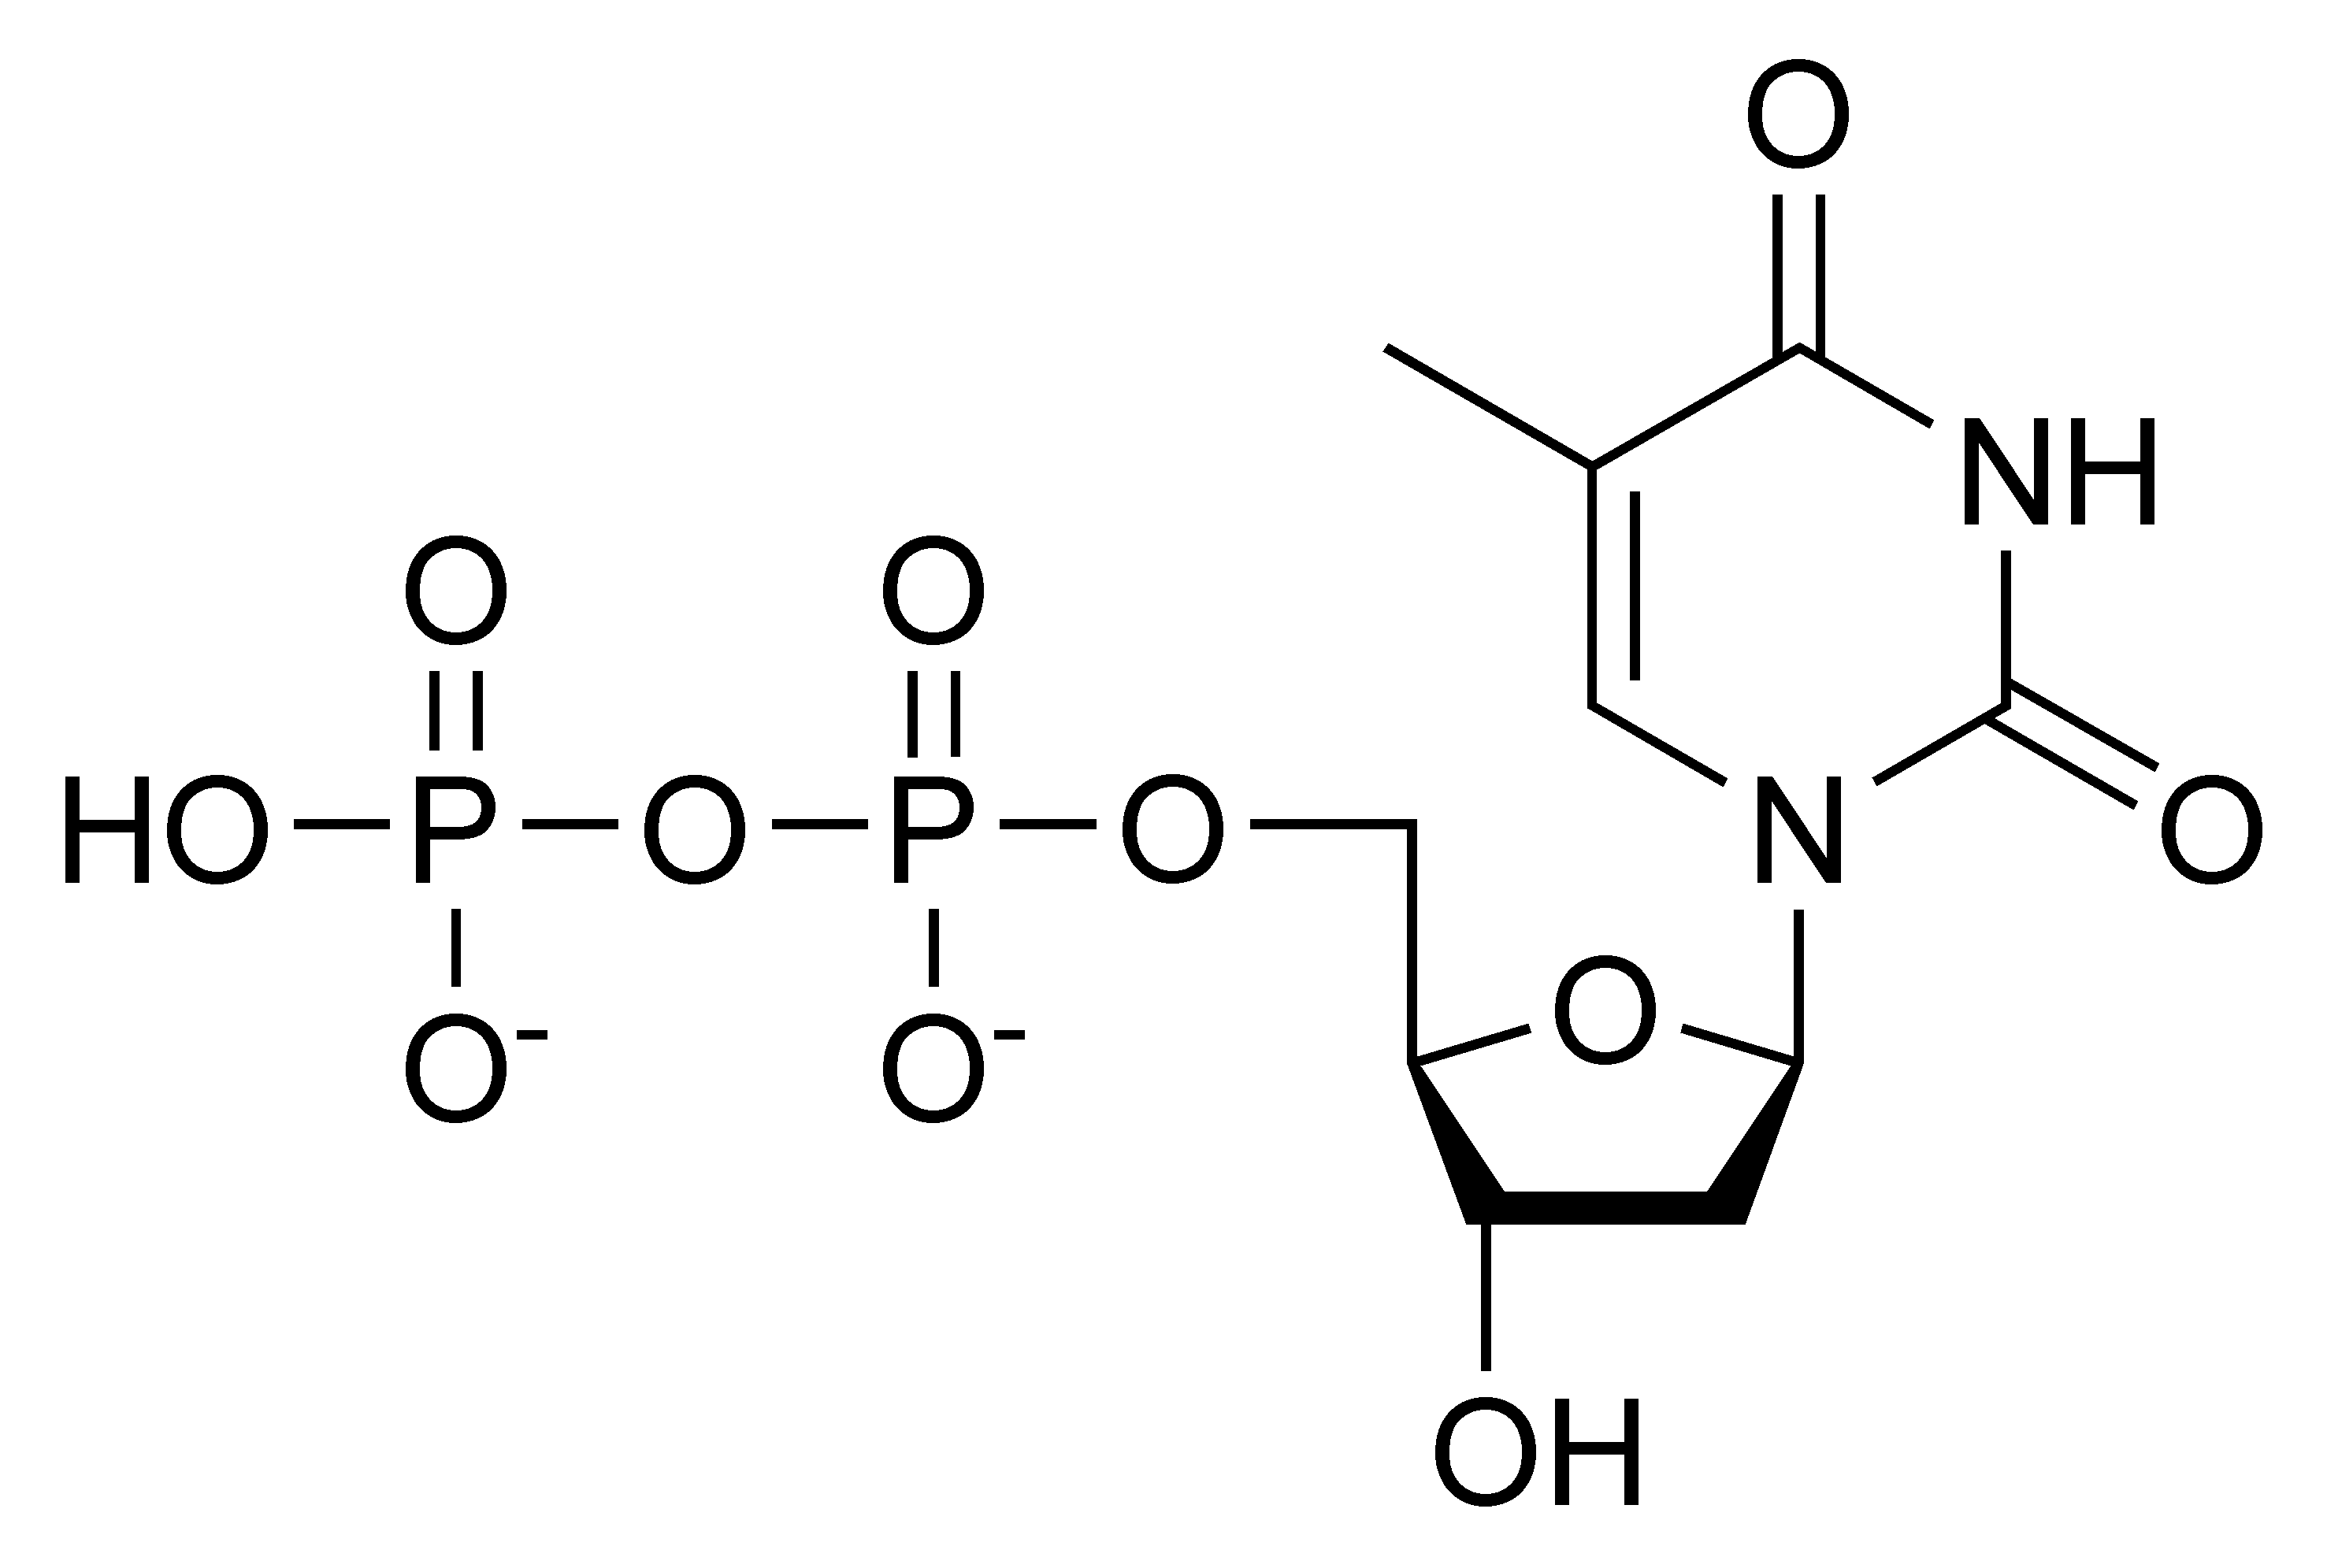 Chemical structure of deoxythymidine diphosphate